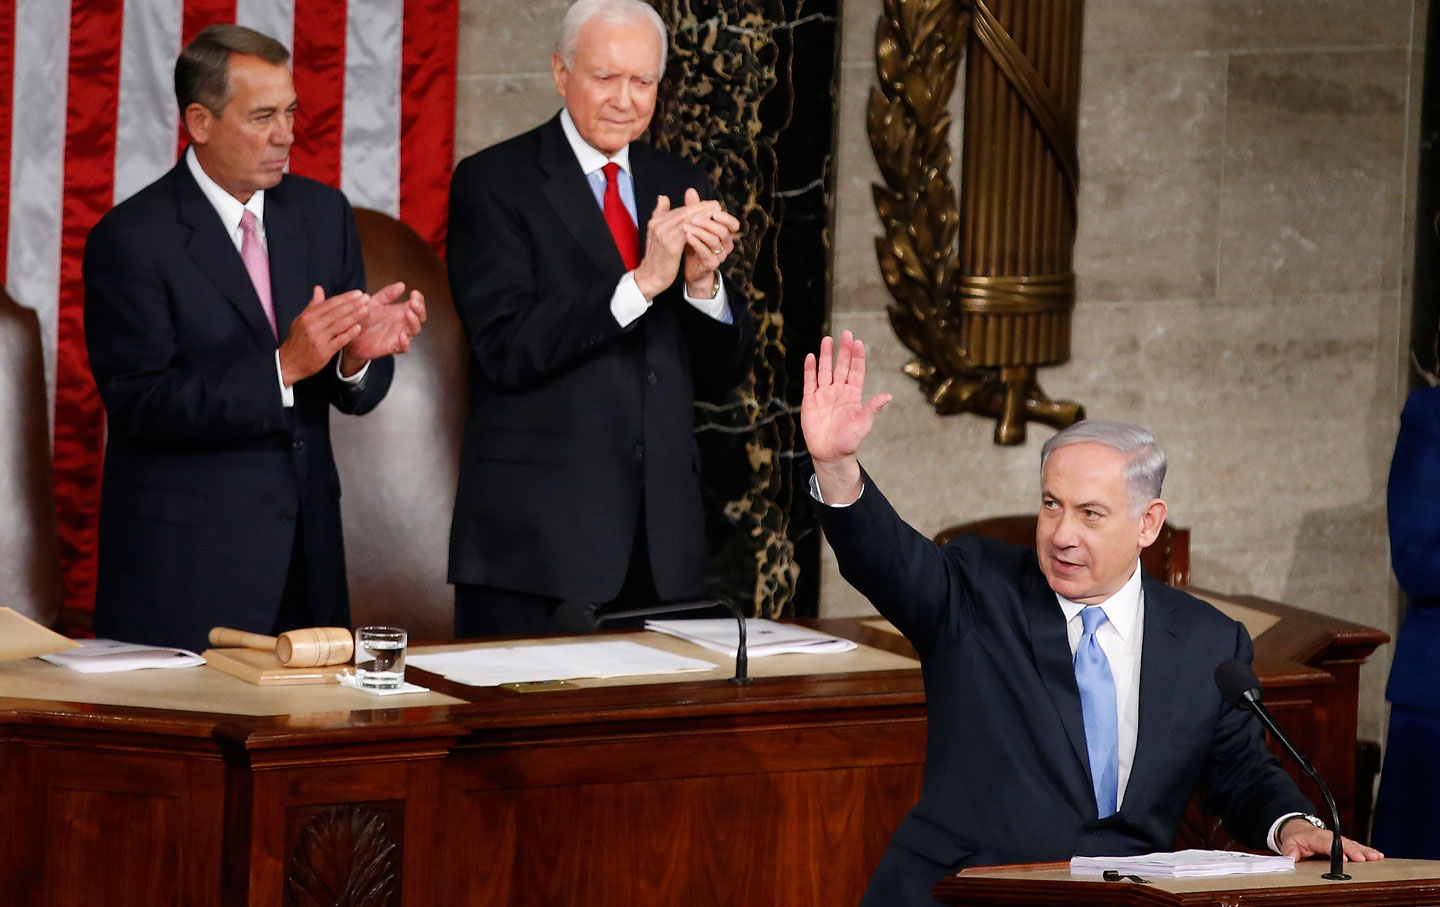 Republicans-Loved-Netanyahu's-Racist-Election-Tactics